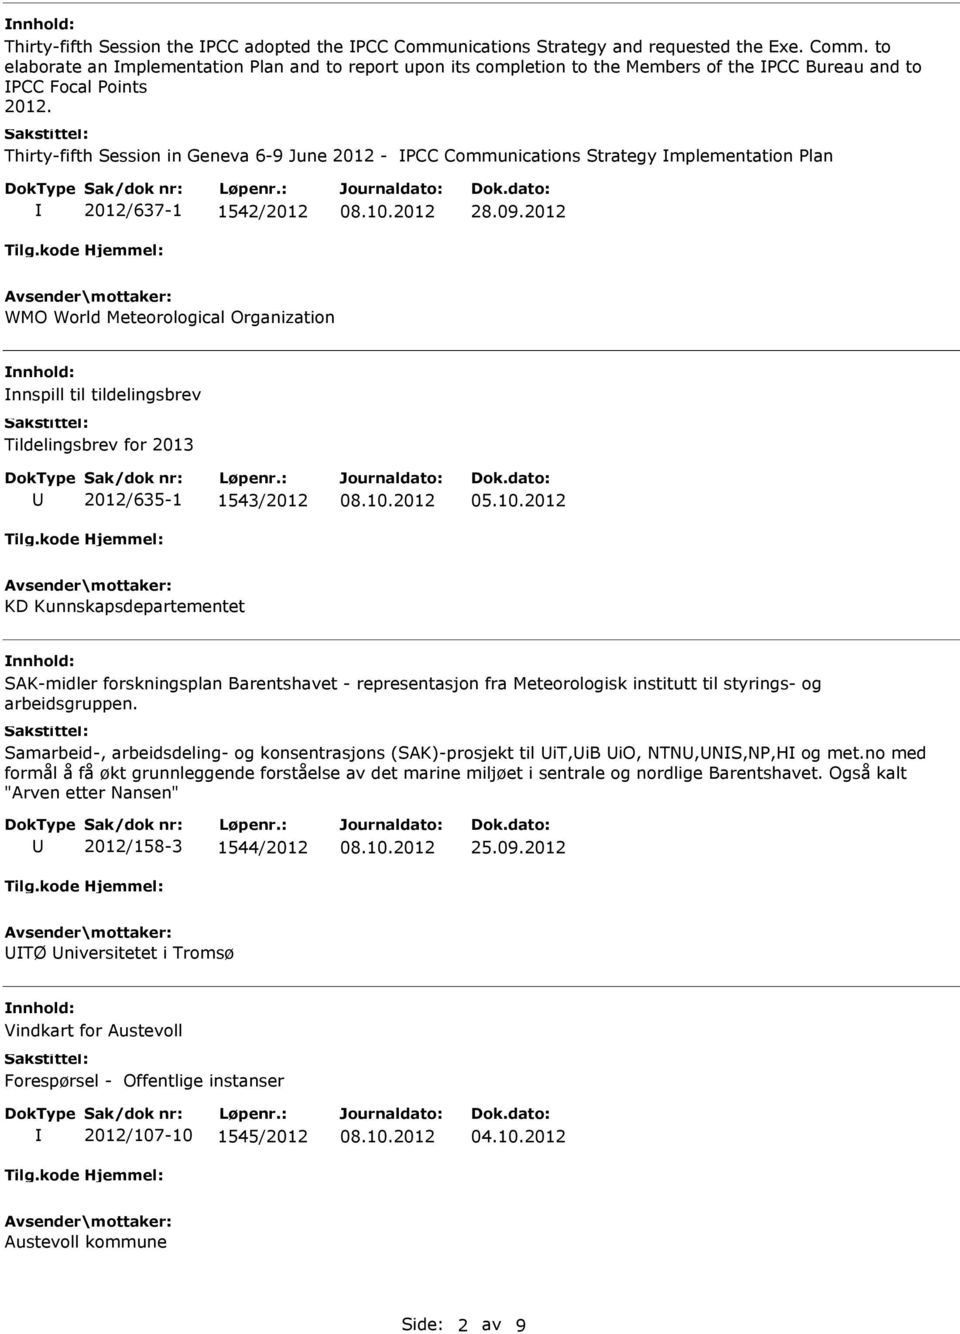 2012 WMO World Meteorological Organization nnspill til tildelingsbrev Tildelingsbrev for 2013 2012/635-1 1543/2012 05.10.